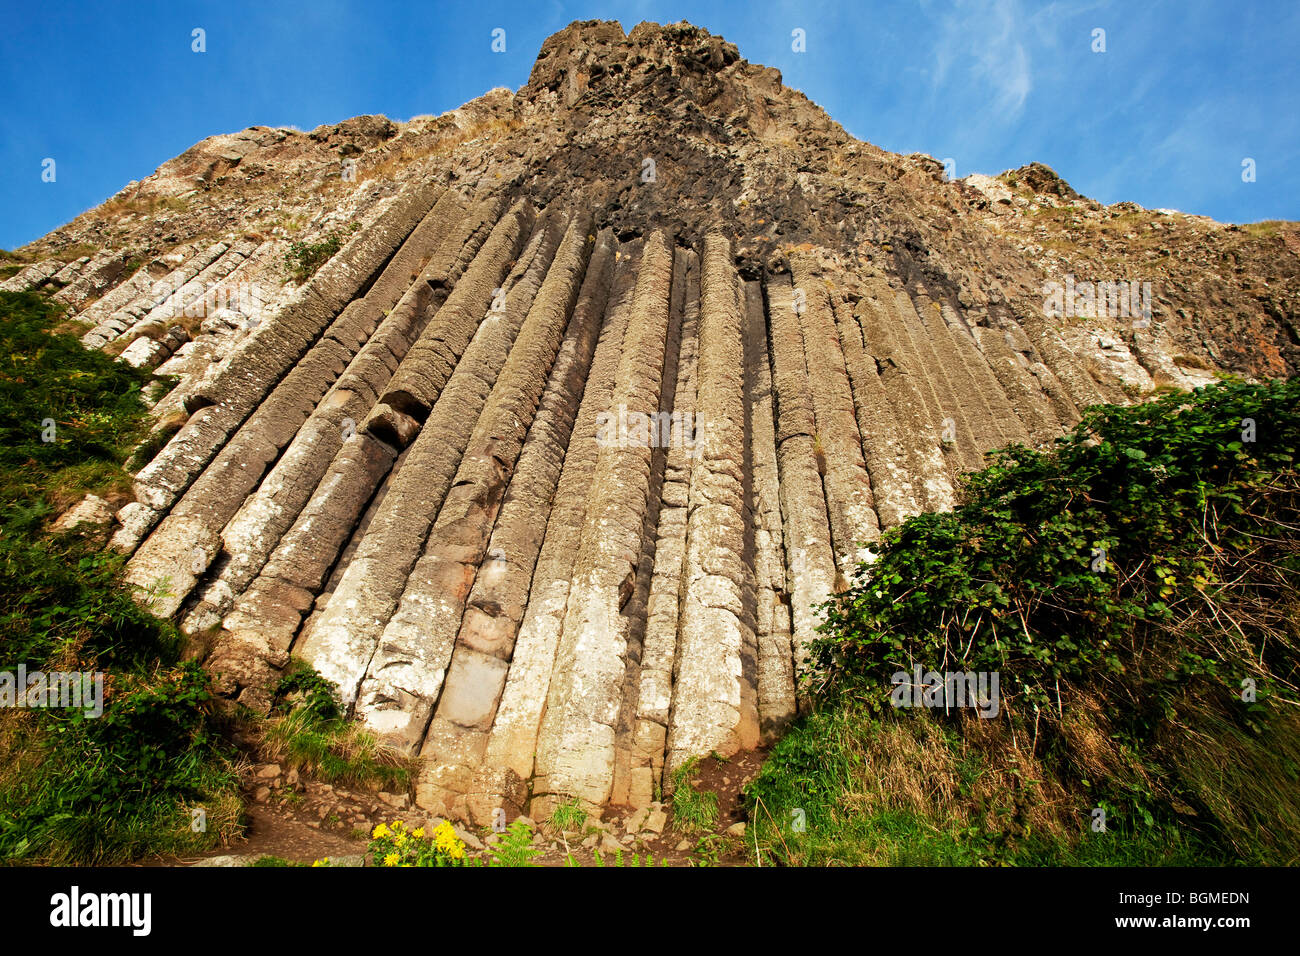 The Organ at the Giant's Causeway Antrim Northern Ireland a natural phenomena and a world heritage site. - Stock Image